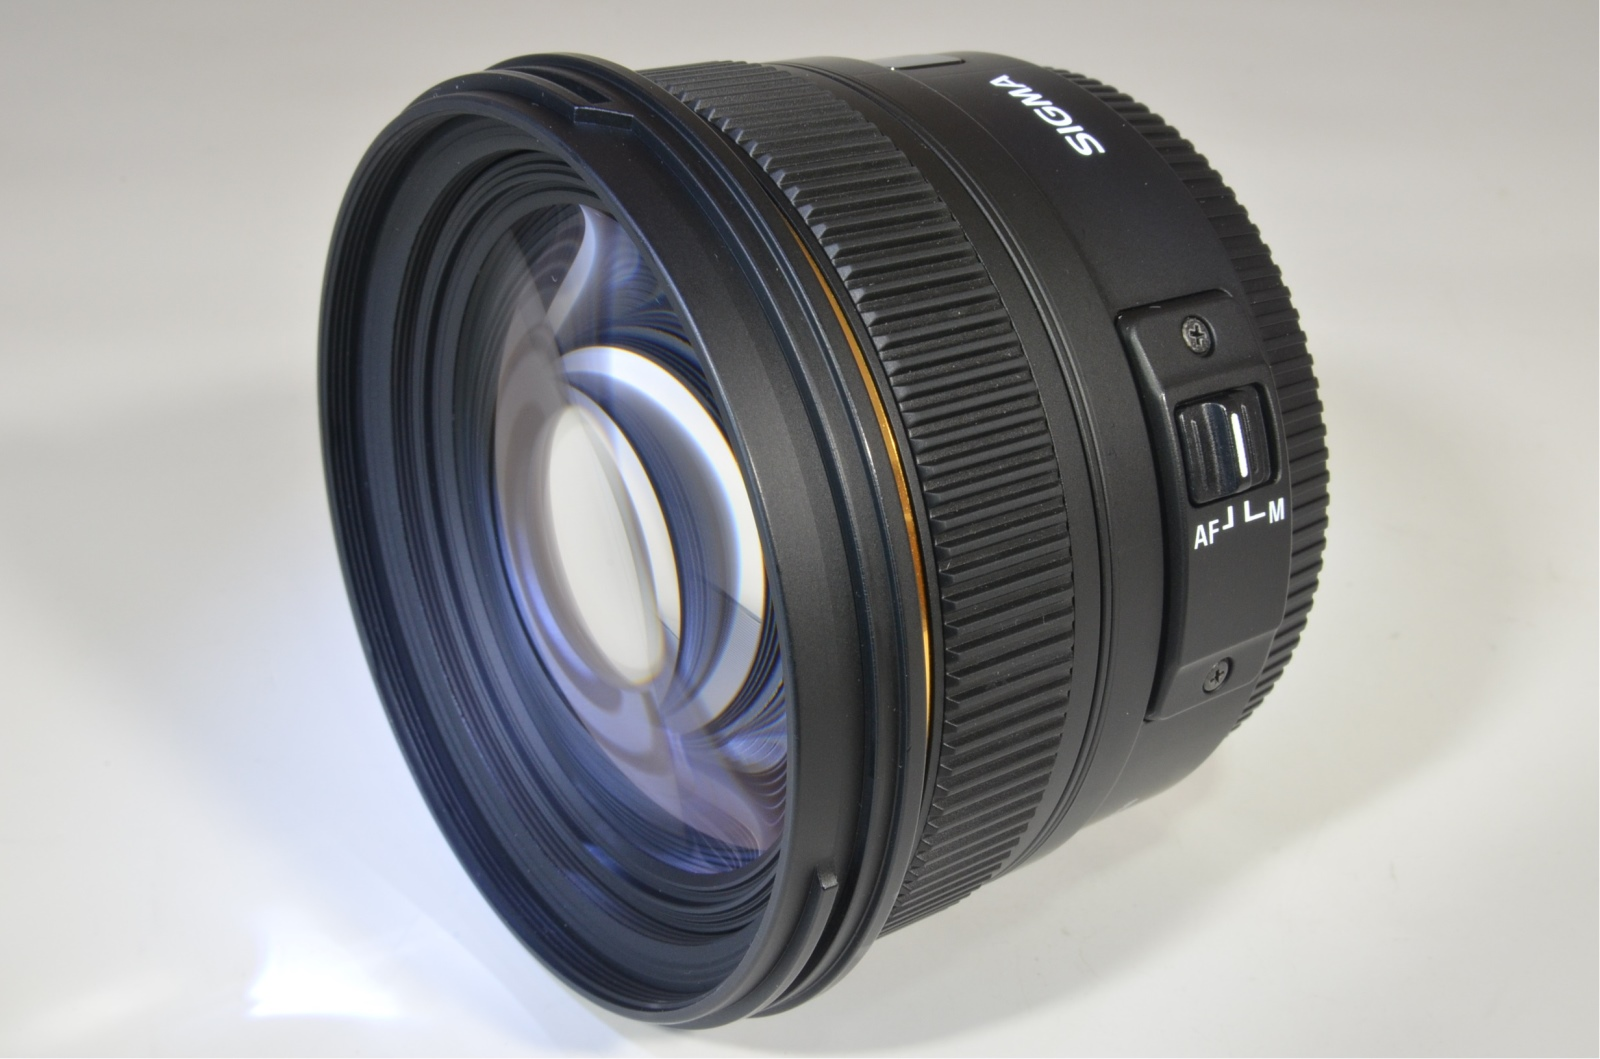 sigma 50mm f1.4 ex dg hsm for canon